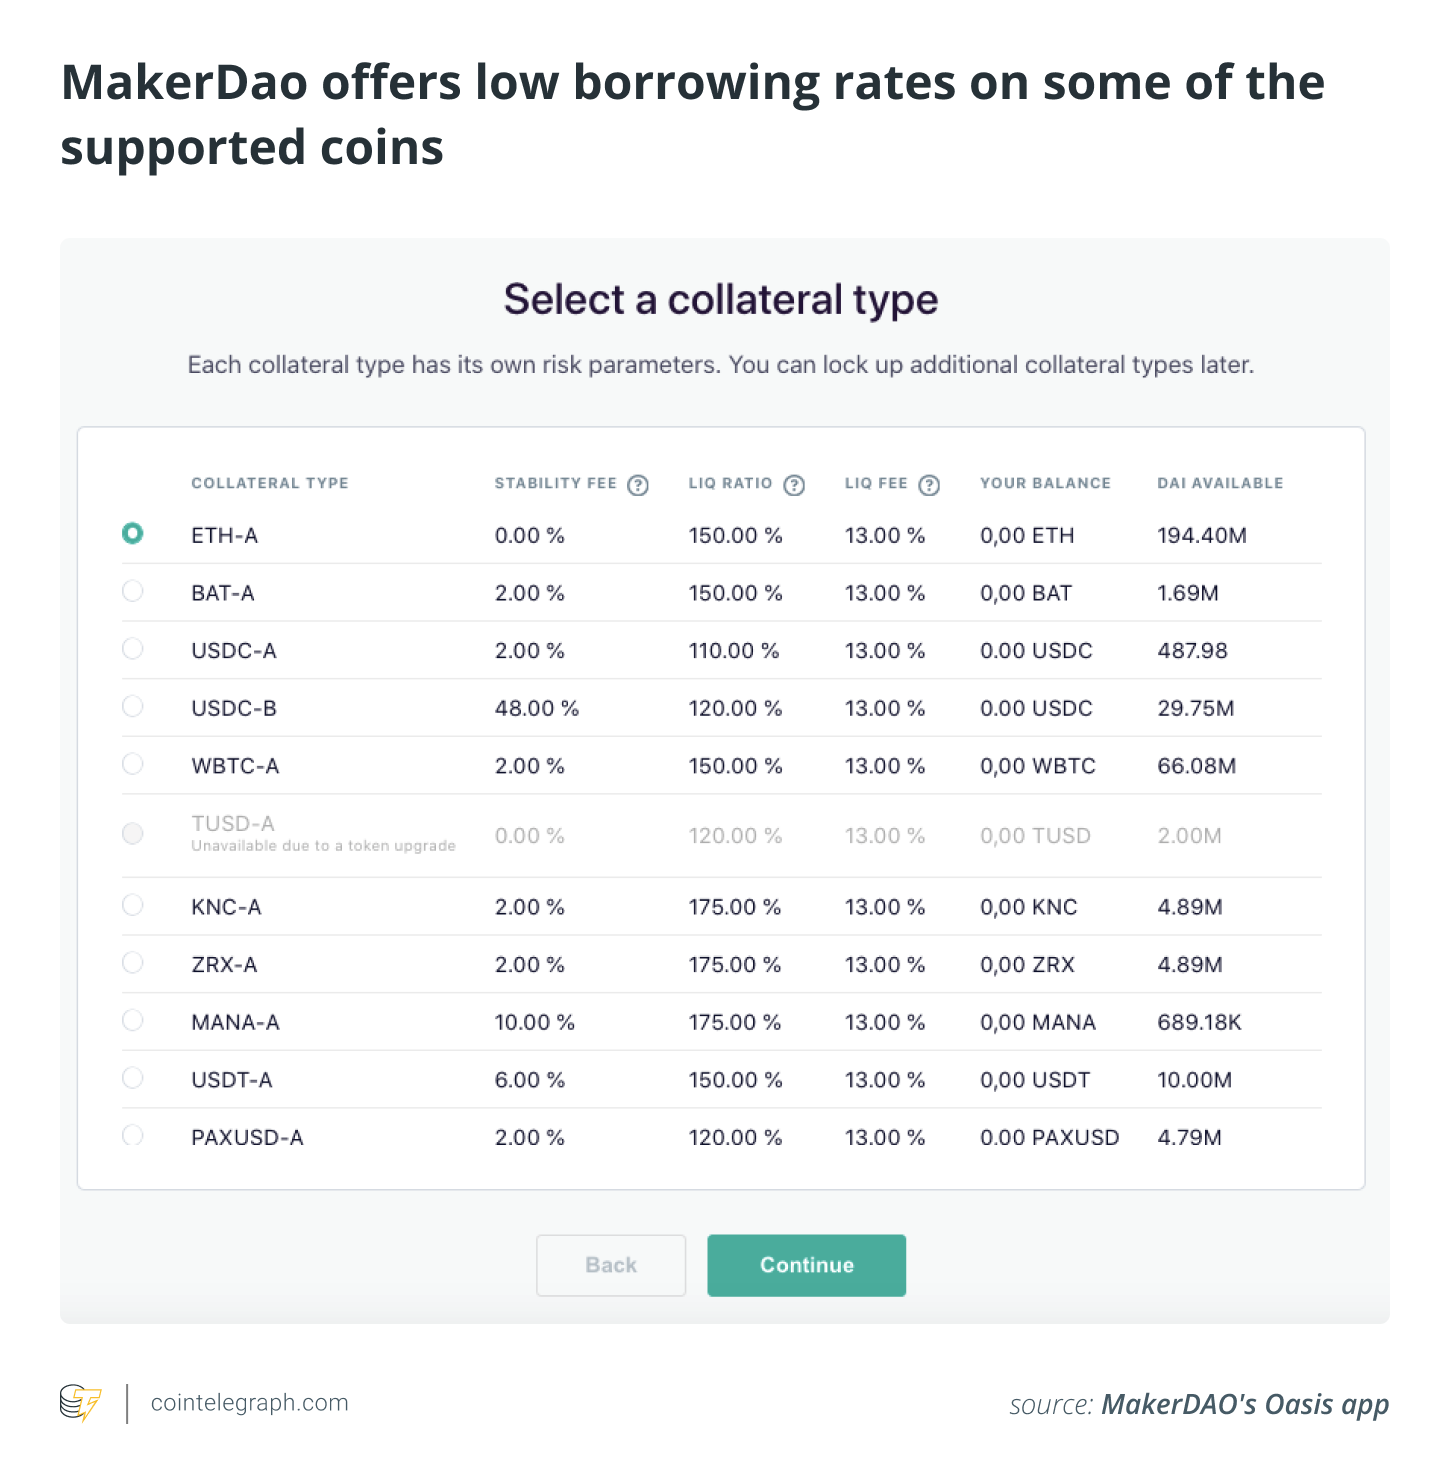 MakerDao offers low borrowing rates on some of the supported coins